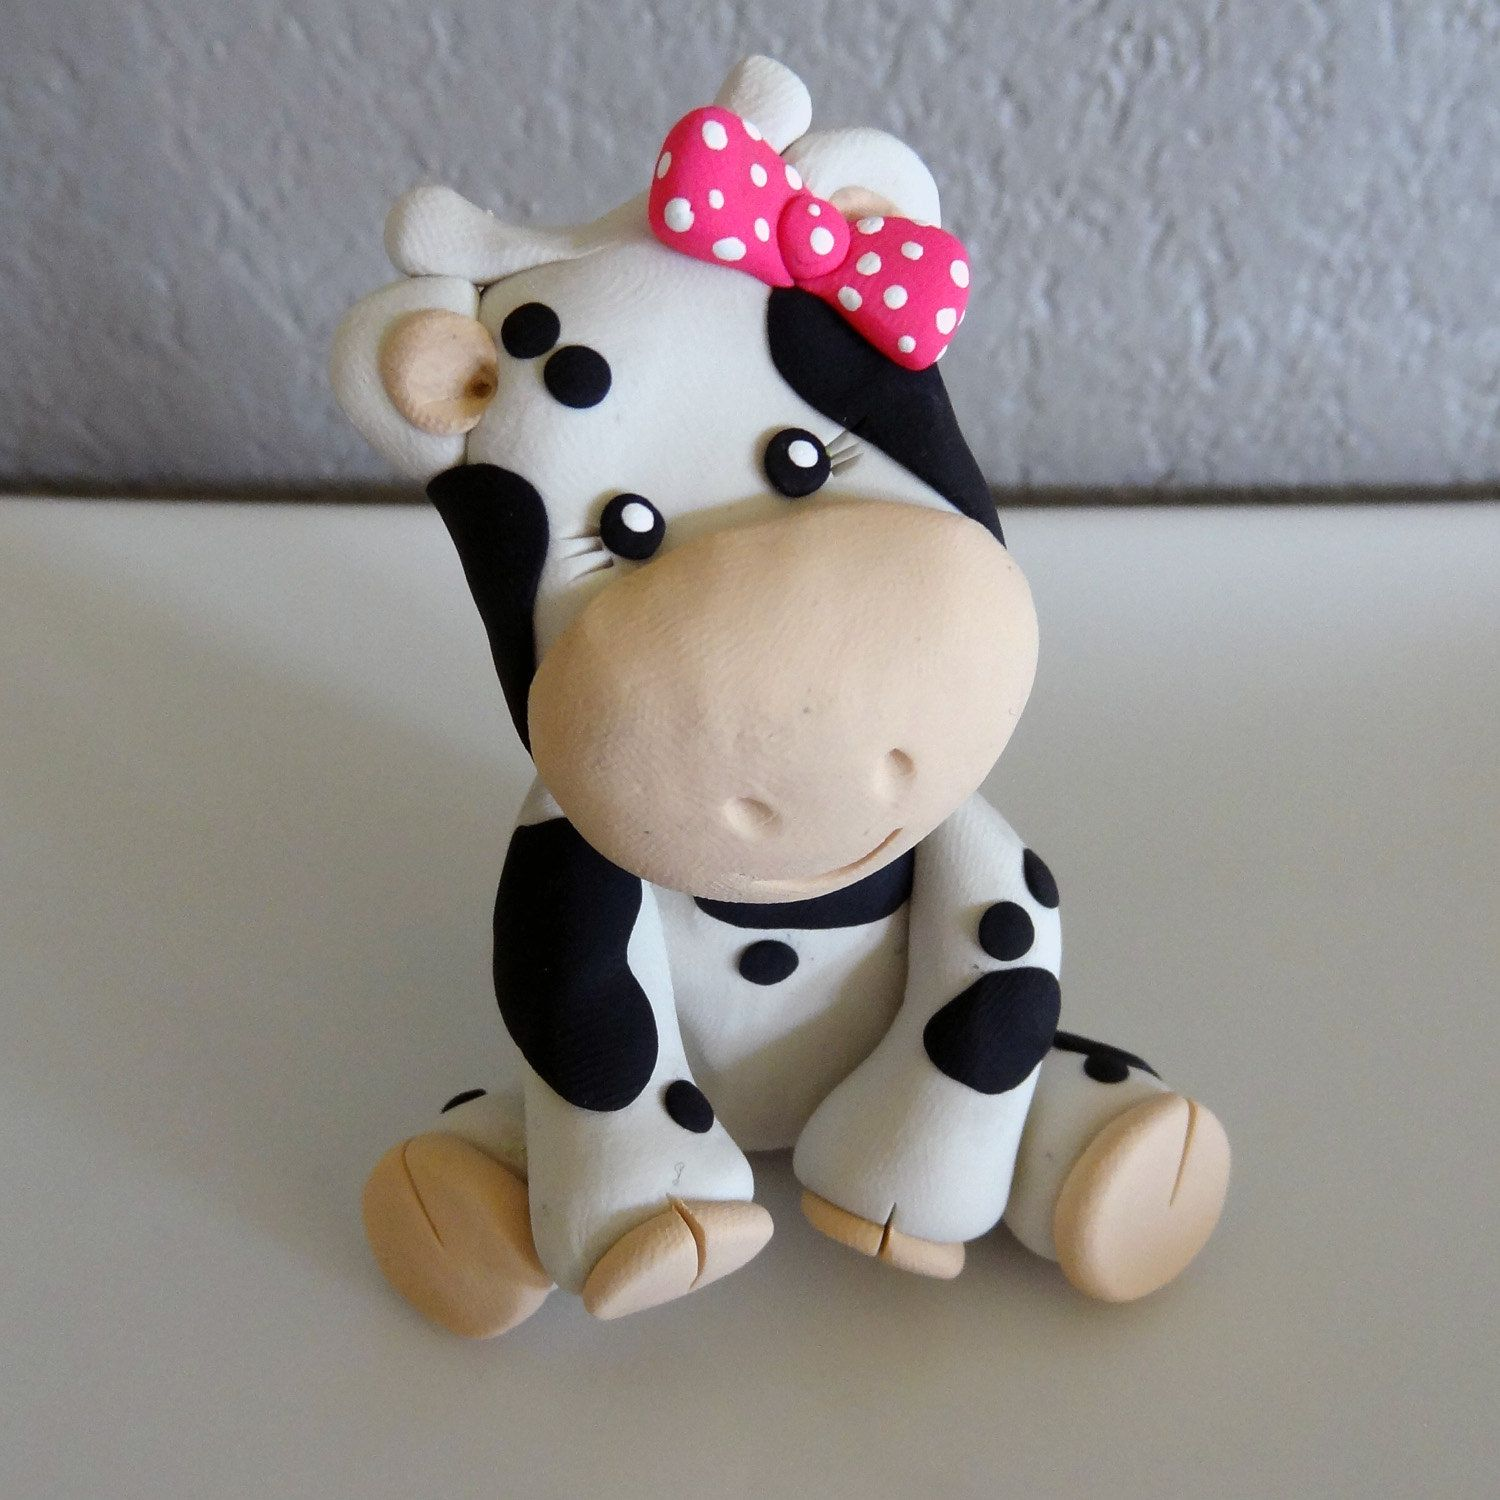 Cow Cake Topper For Birthday Or Baby Shower Cows